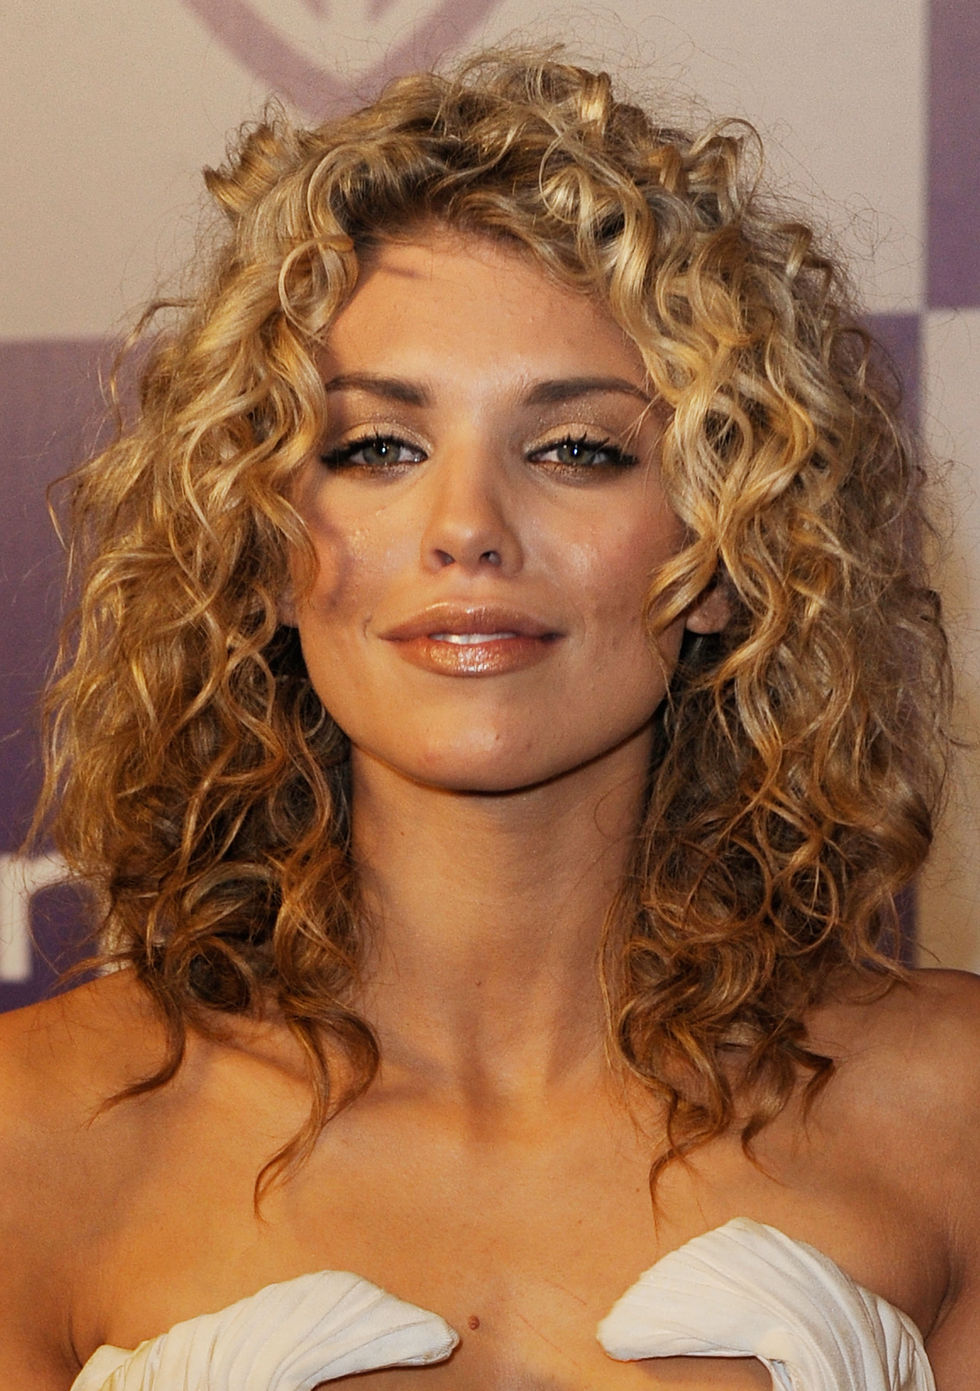 cruly hair styles annalynne mccord 2010 golden globe awards 04 gotceleb 1666 | annalynne mccord 2010 golden globe awards 04